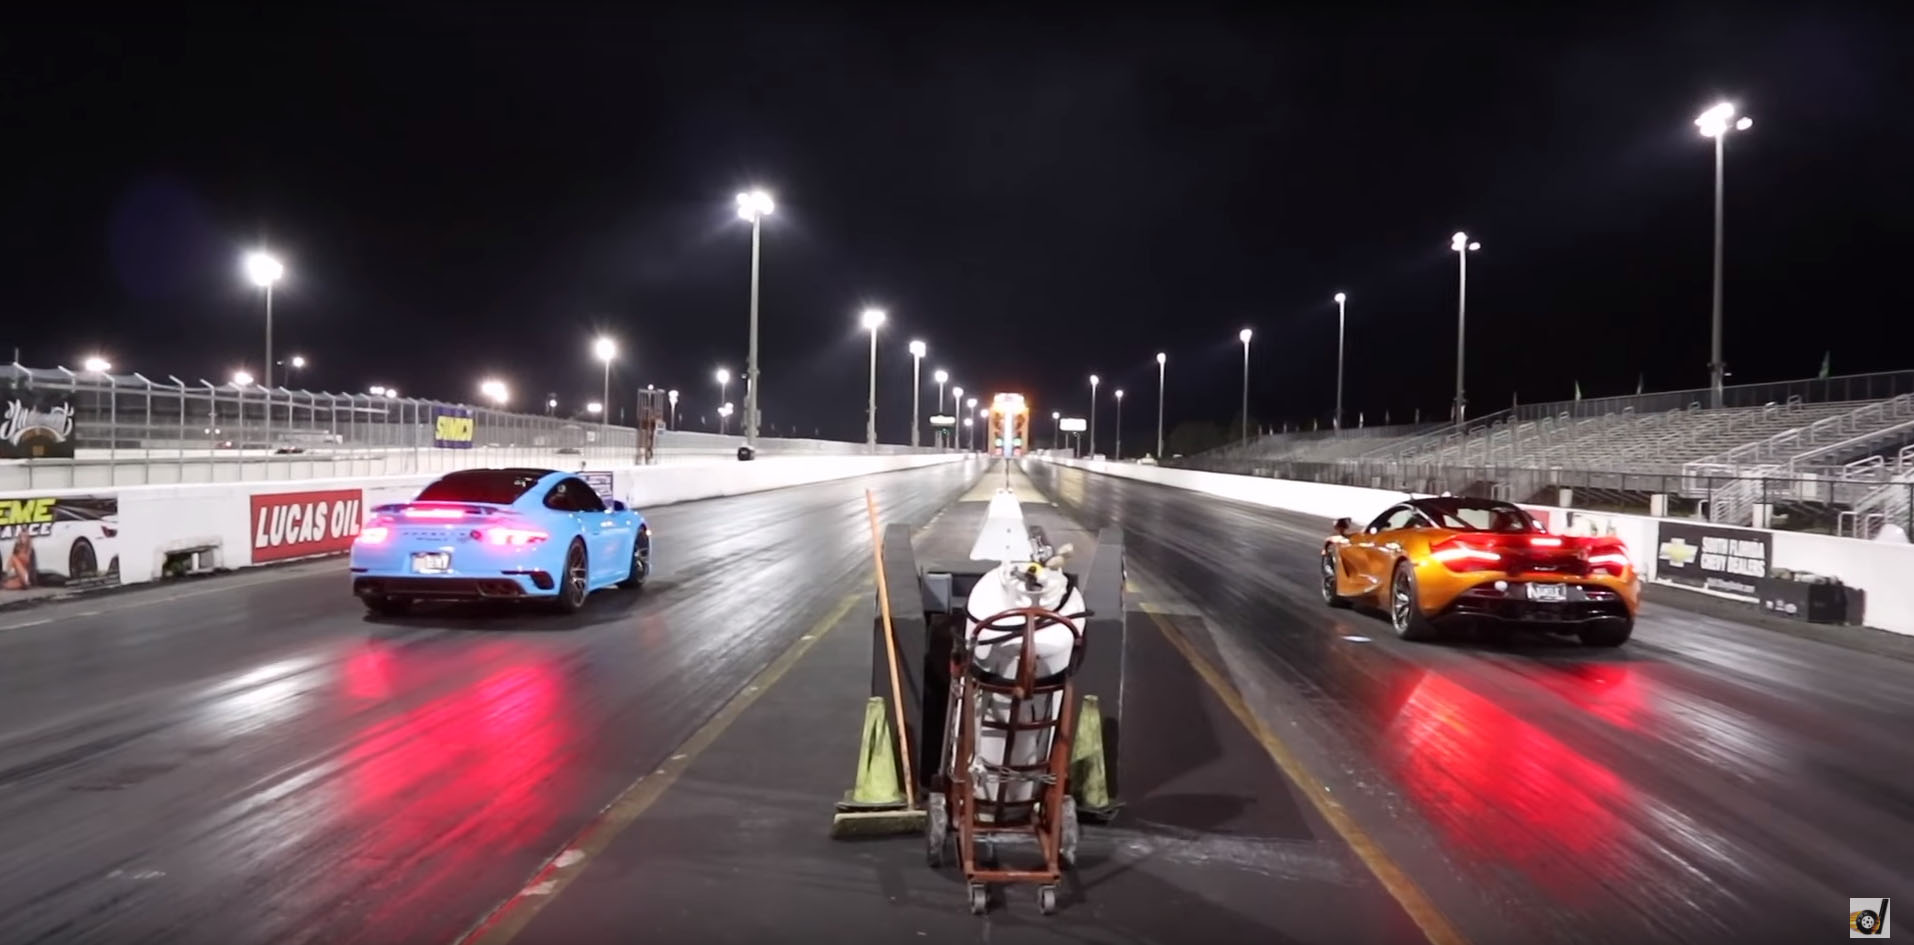 Mclaren 720s Vs Porsche 911 Turbo S Drag Race Is A